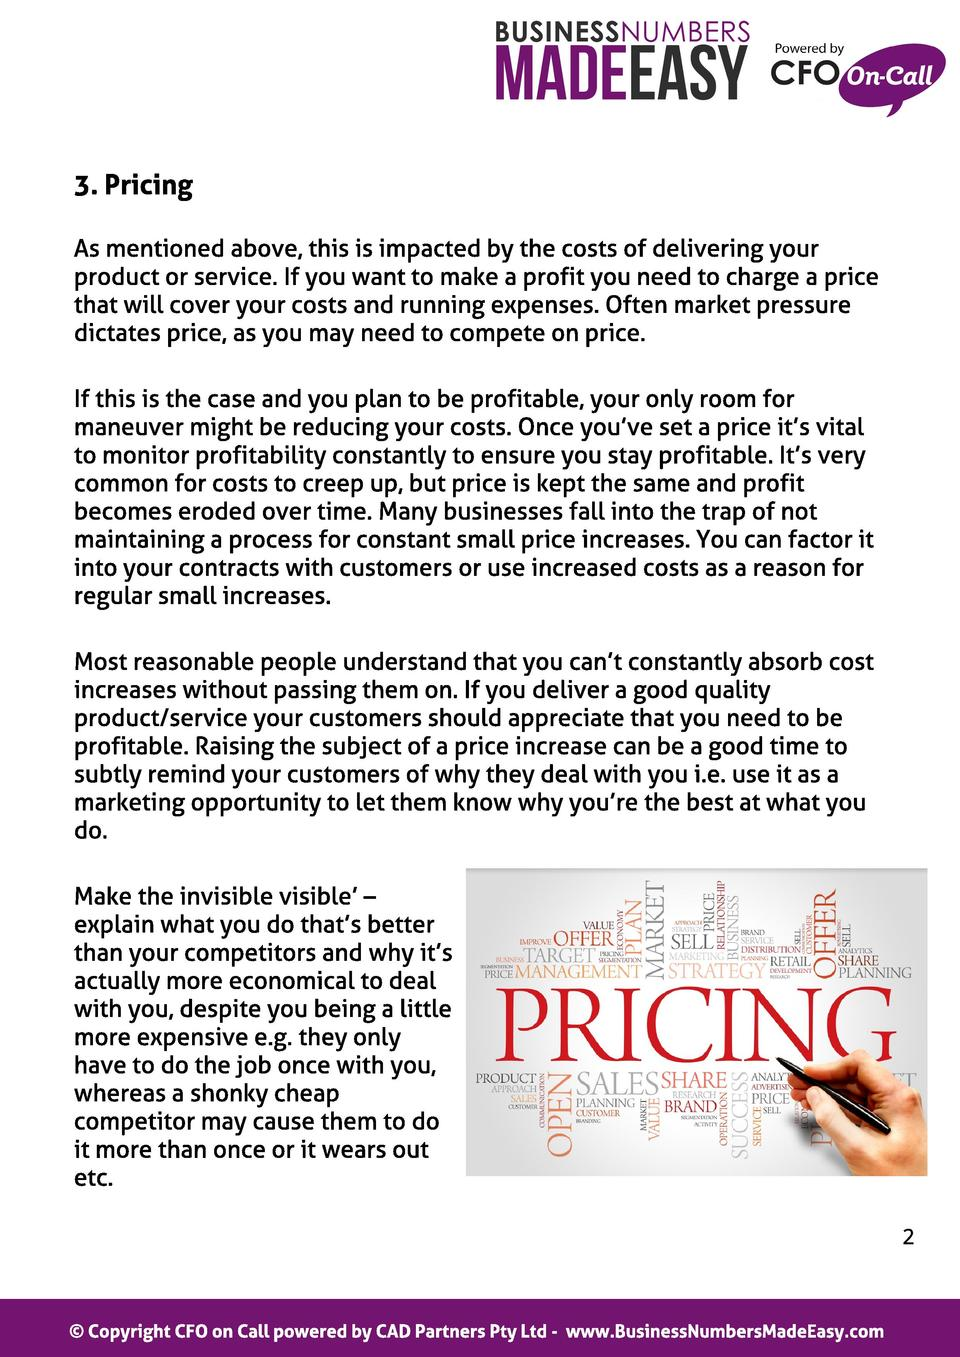 3. Pricing As mentioned above, this is impacted by the costs of delivering your product or service. If you want to make a ...